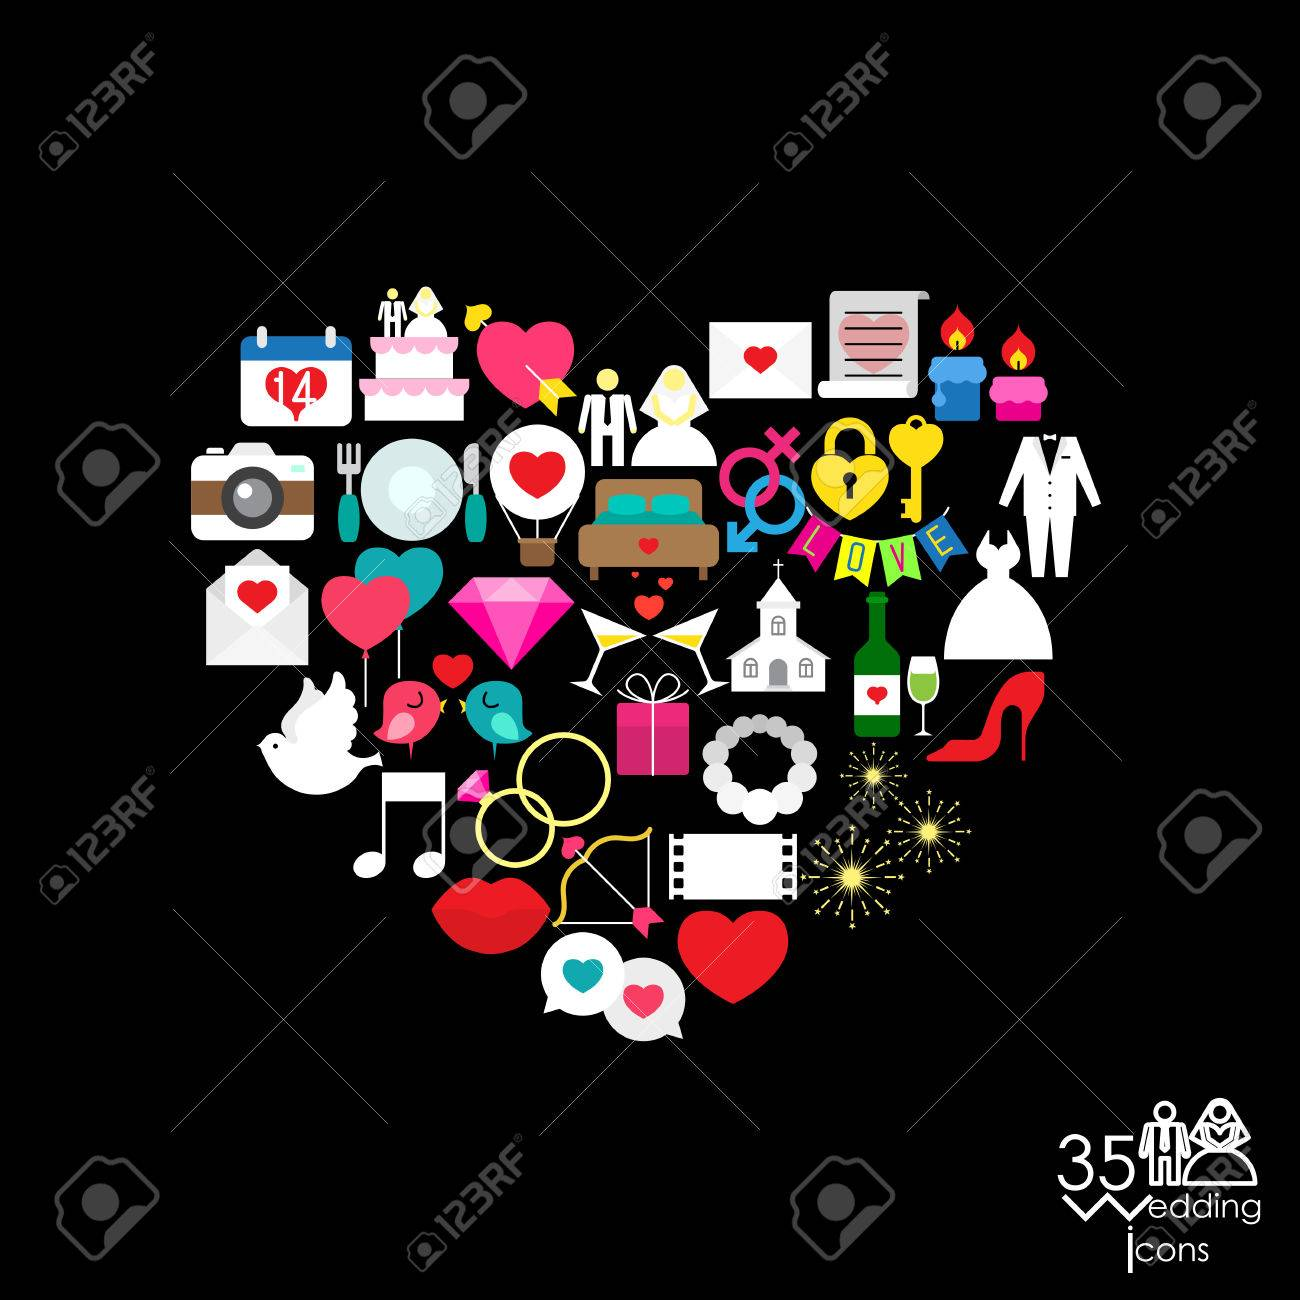 love icon objects in the heart sign shape vector illustration